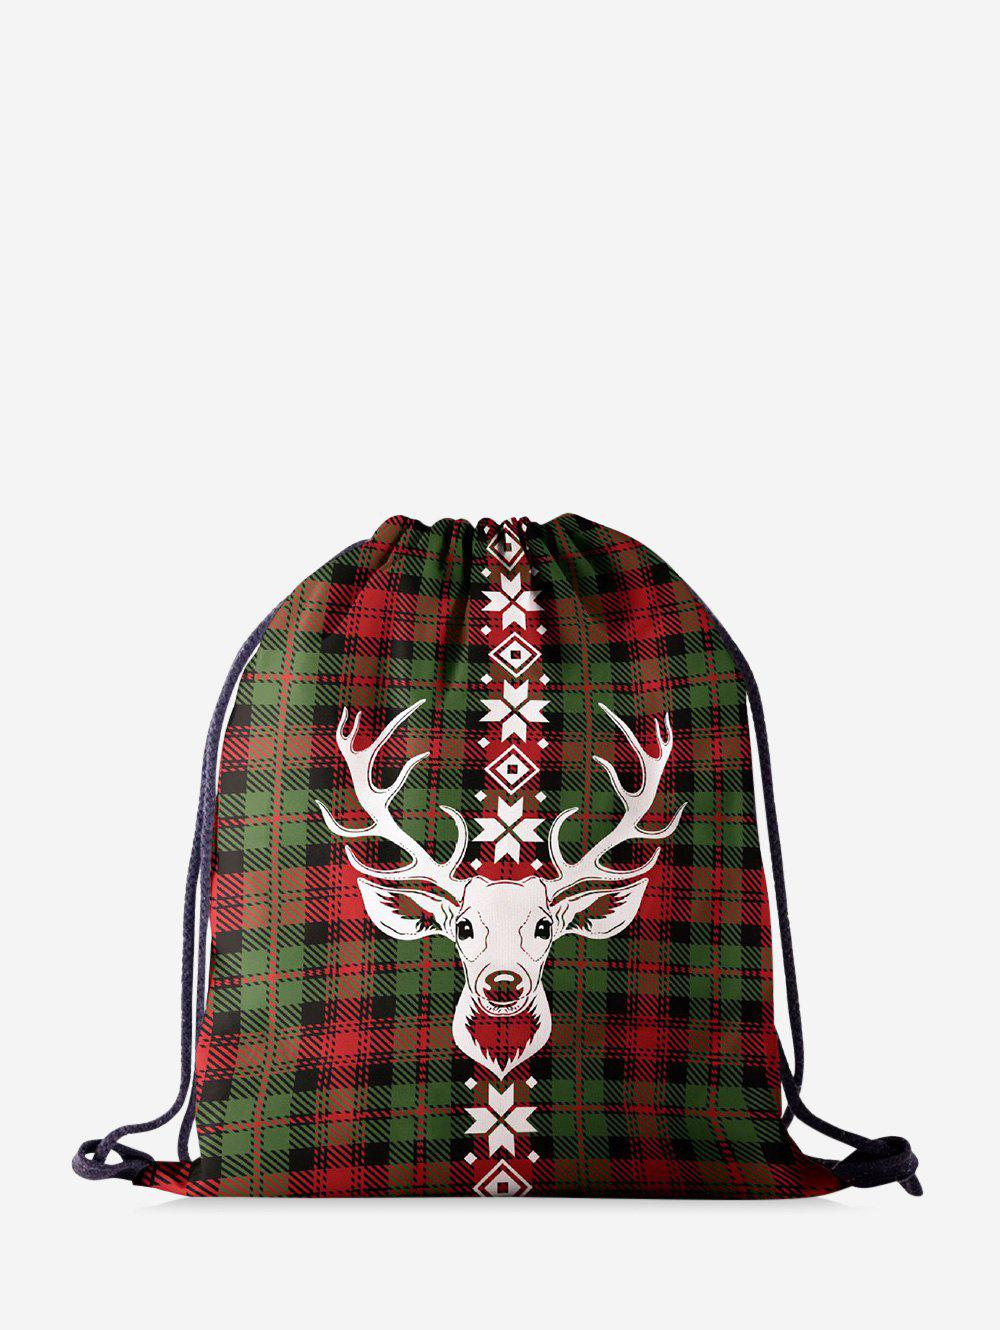 Discount Christmas Plaid Elk Digital Printing Cinch Bag